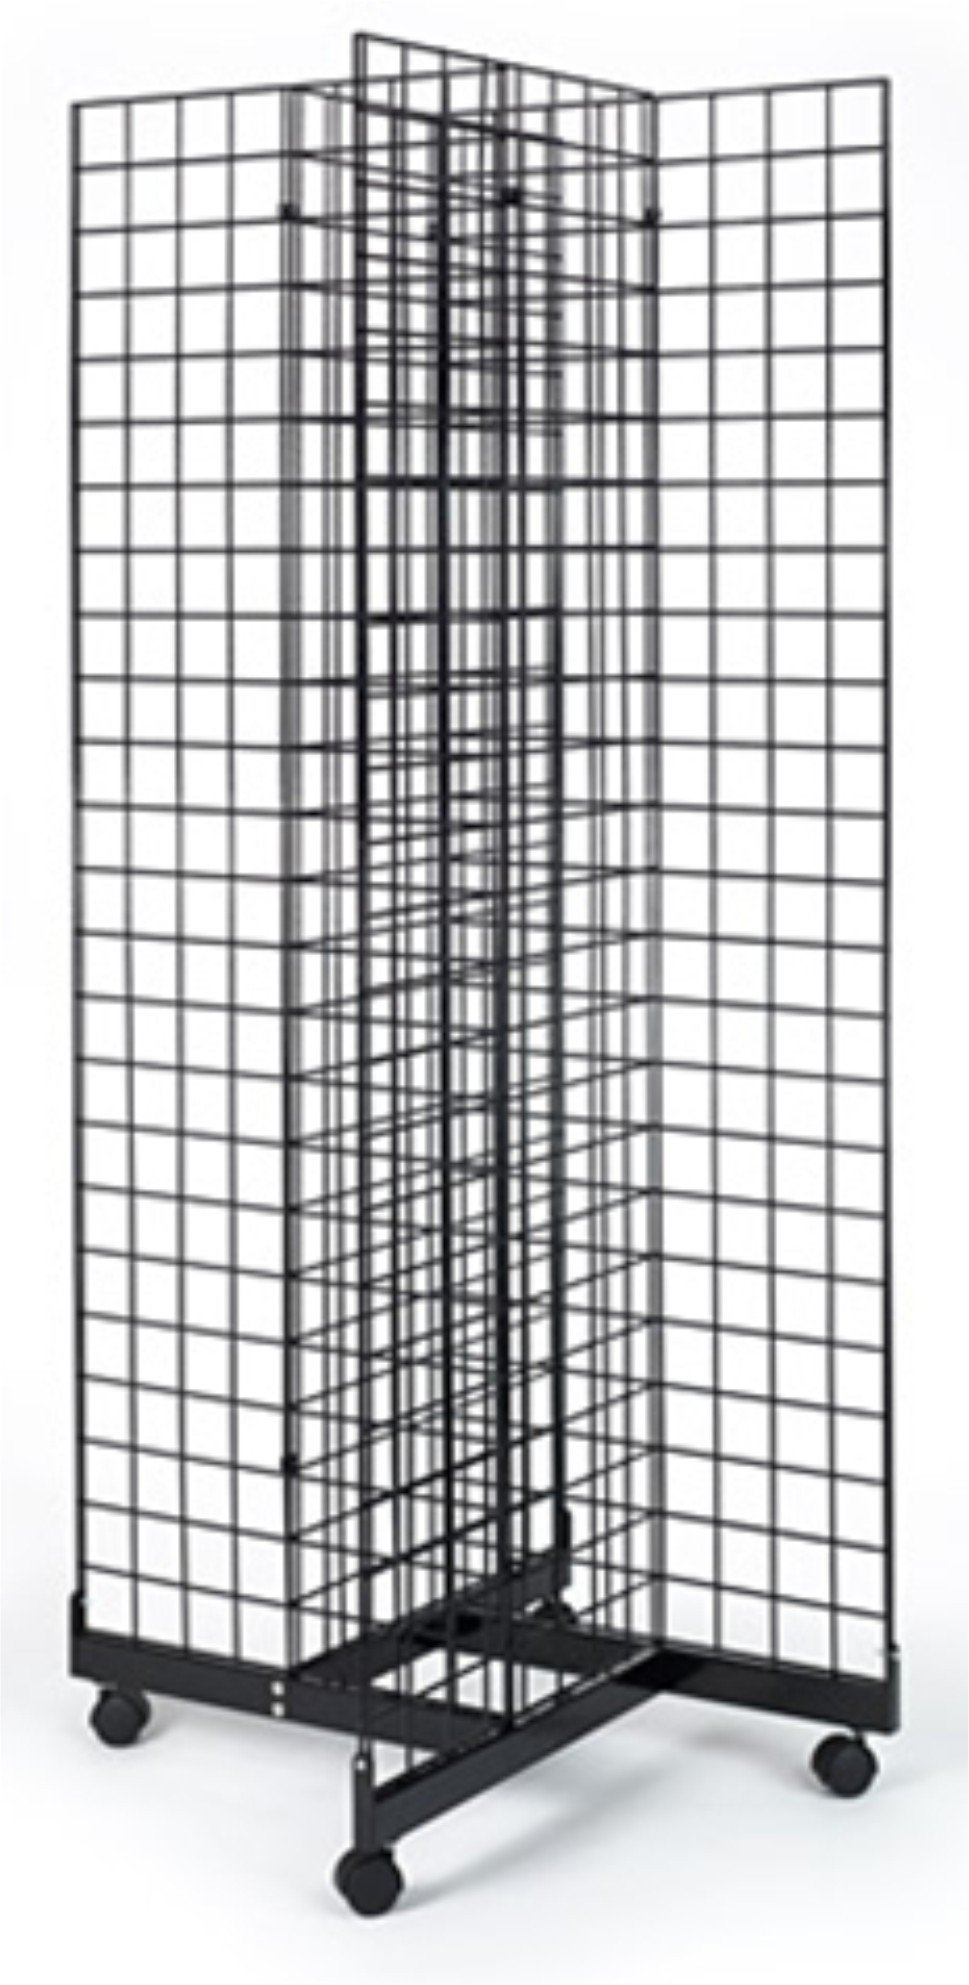 2' x 6' Grid Panel 4-Sided Floorstanding Display Fixture with Rolling Base. Matte Black